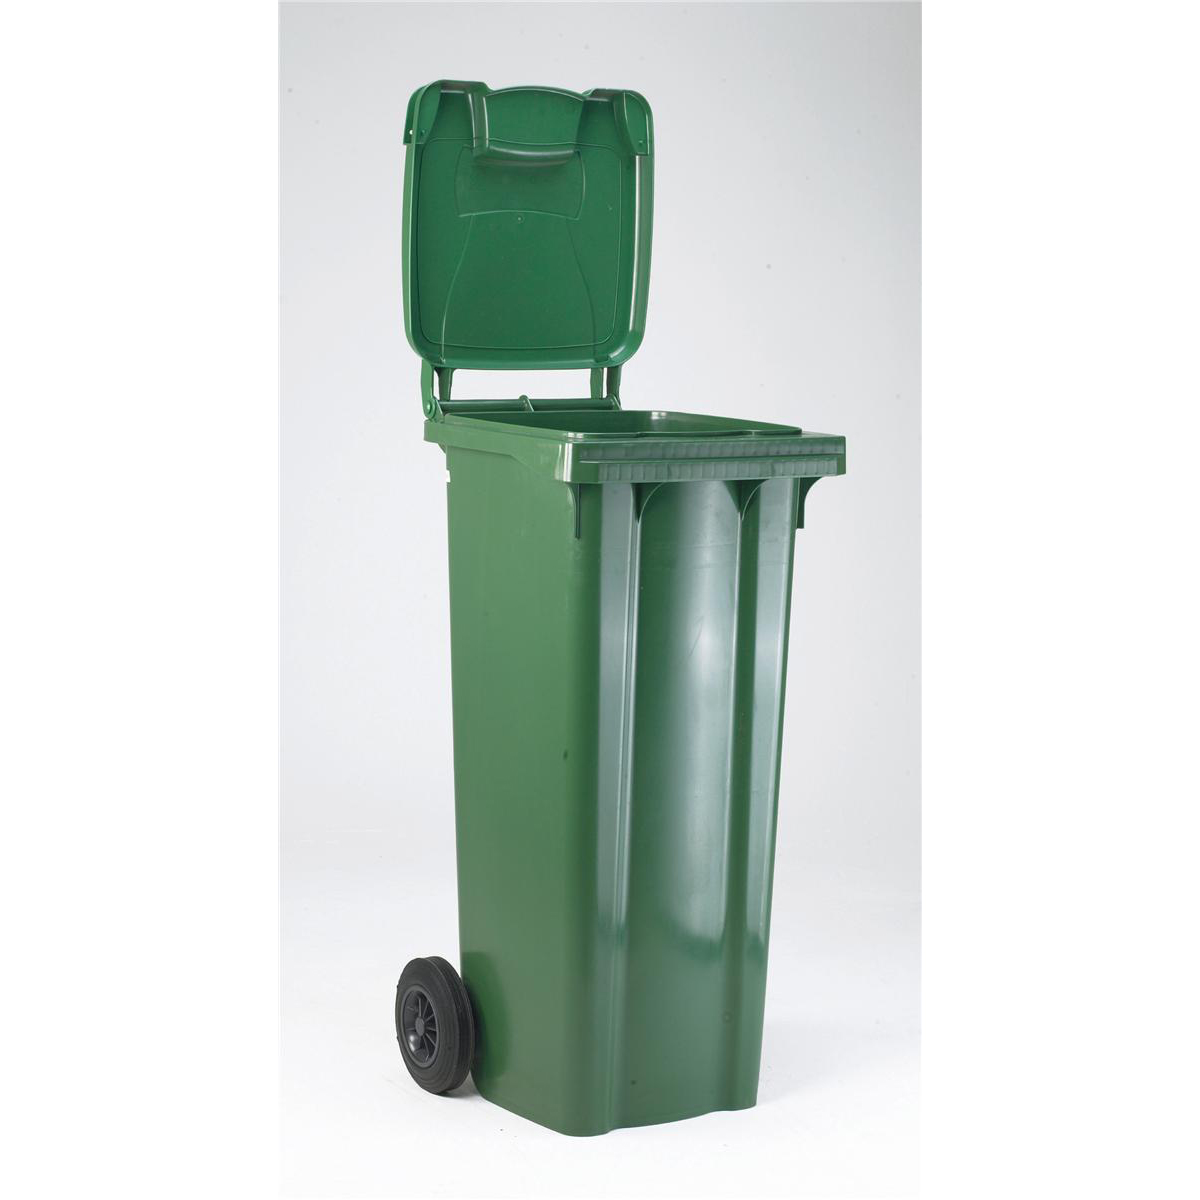 Wheelie Bin High Density Polyethylene with Rear Wheels 80 Litre Capacity 445x525x930mm Green